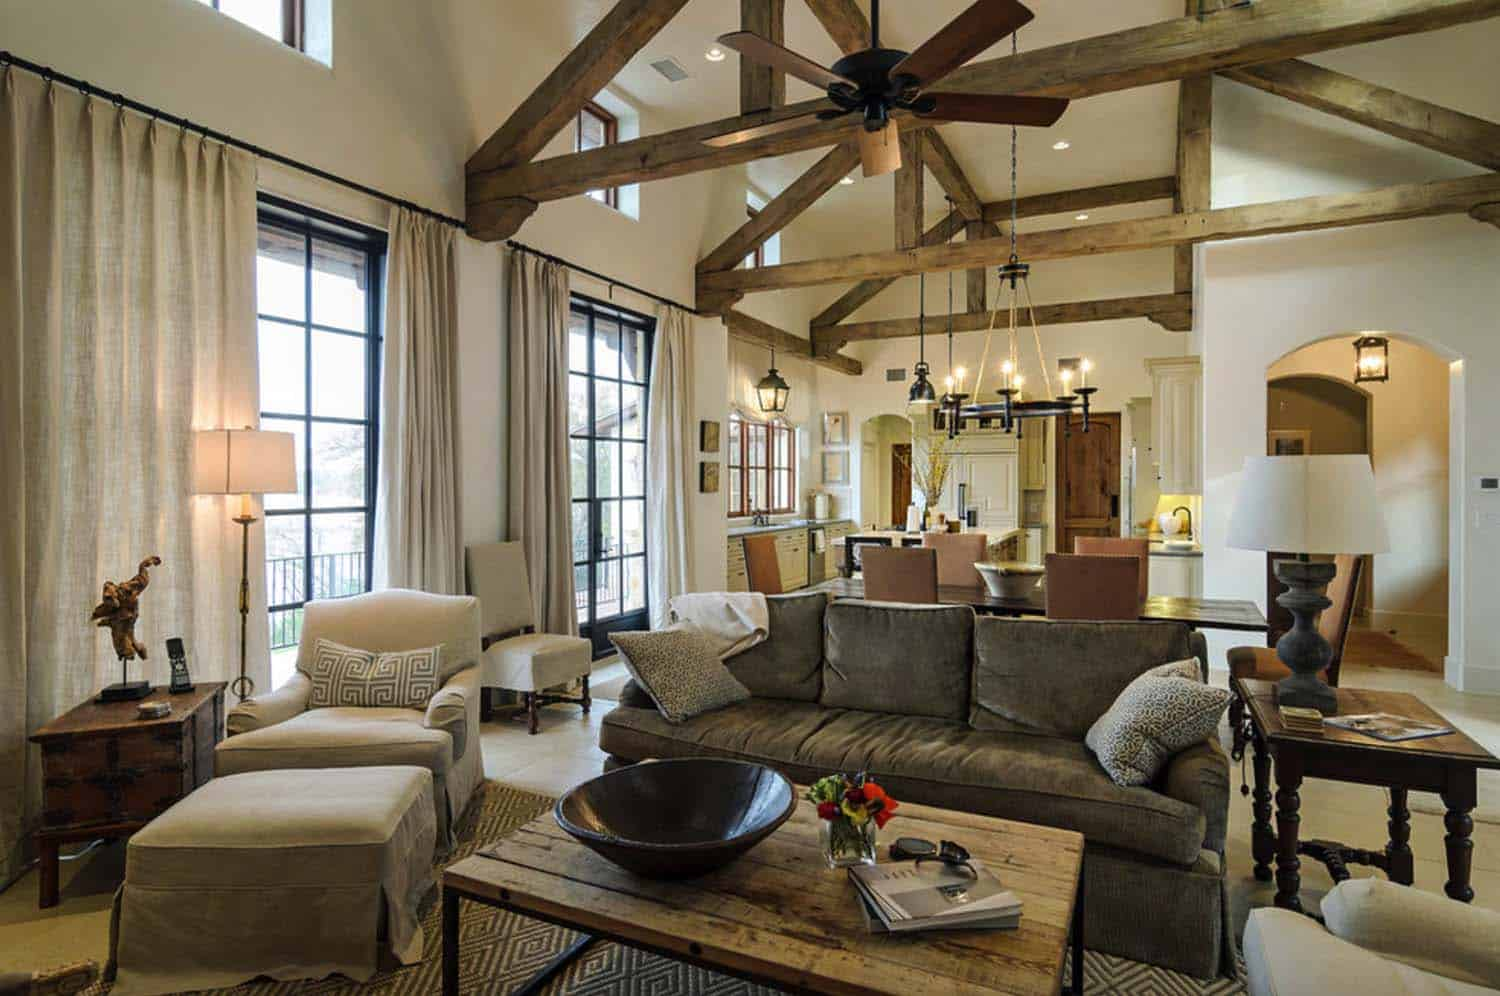 Mediterranean Style Home With Rustic Yet Elegant Interiors